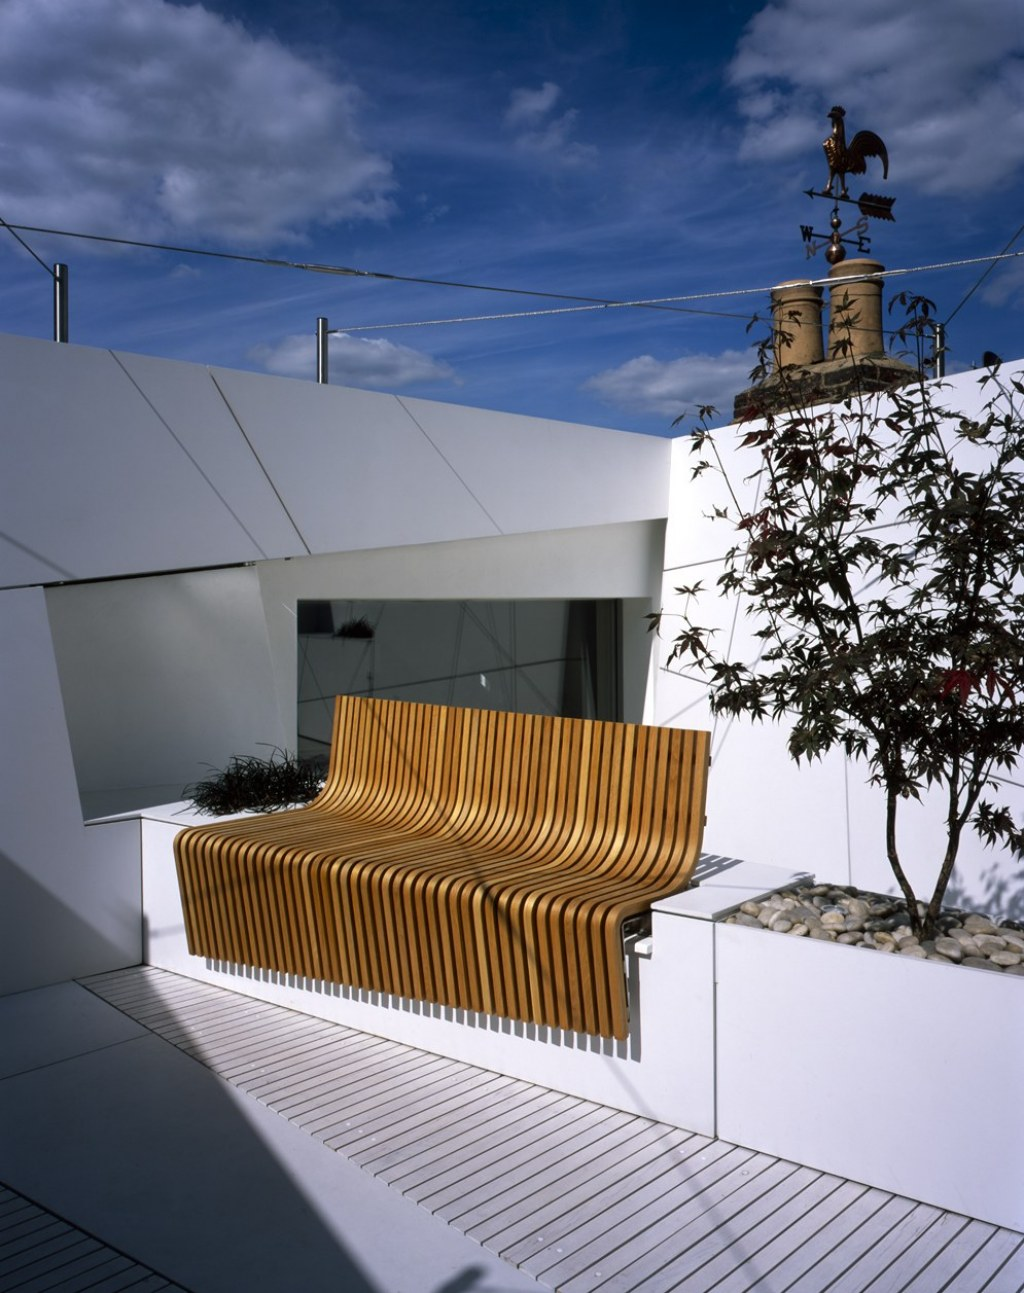 R O O F  G A  R  D  E  N / Laminated timber bench in the sun